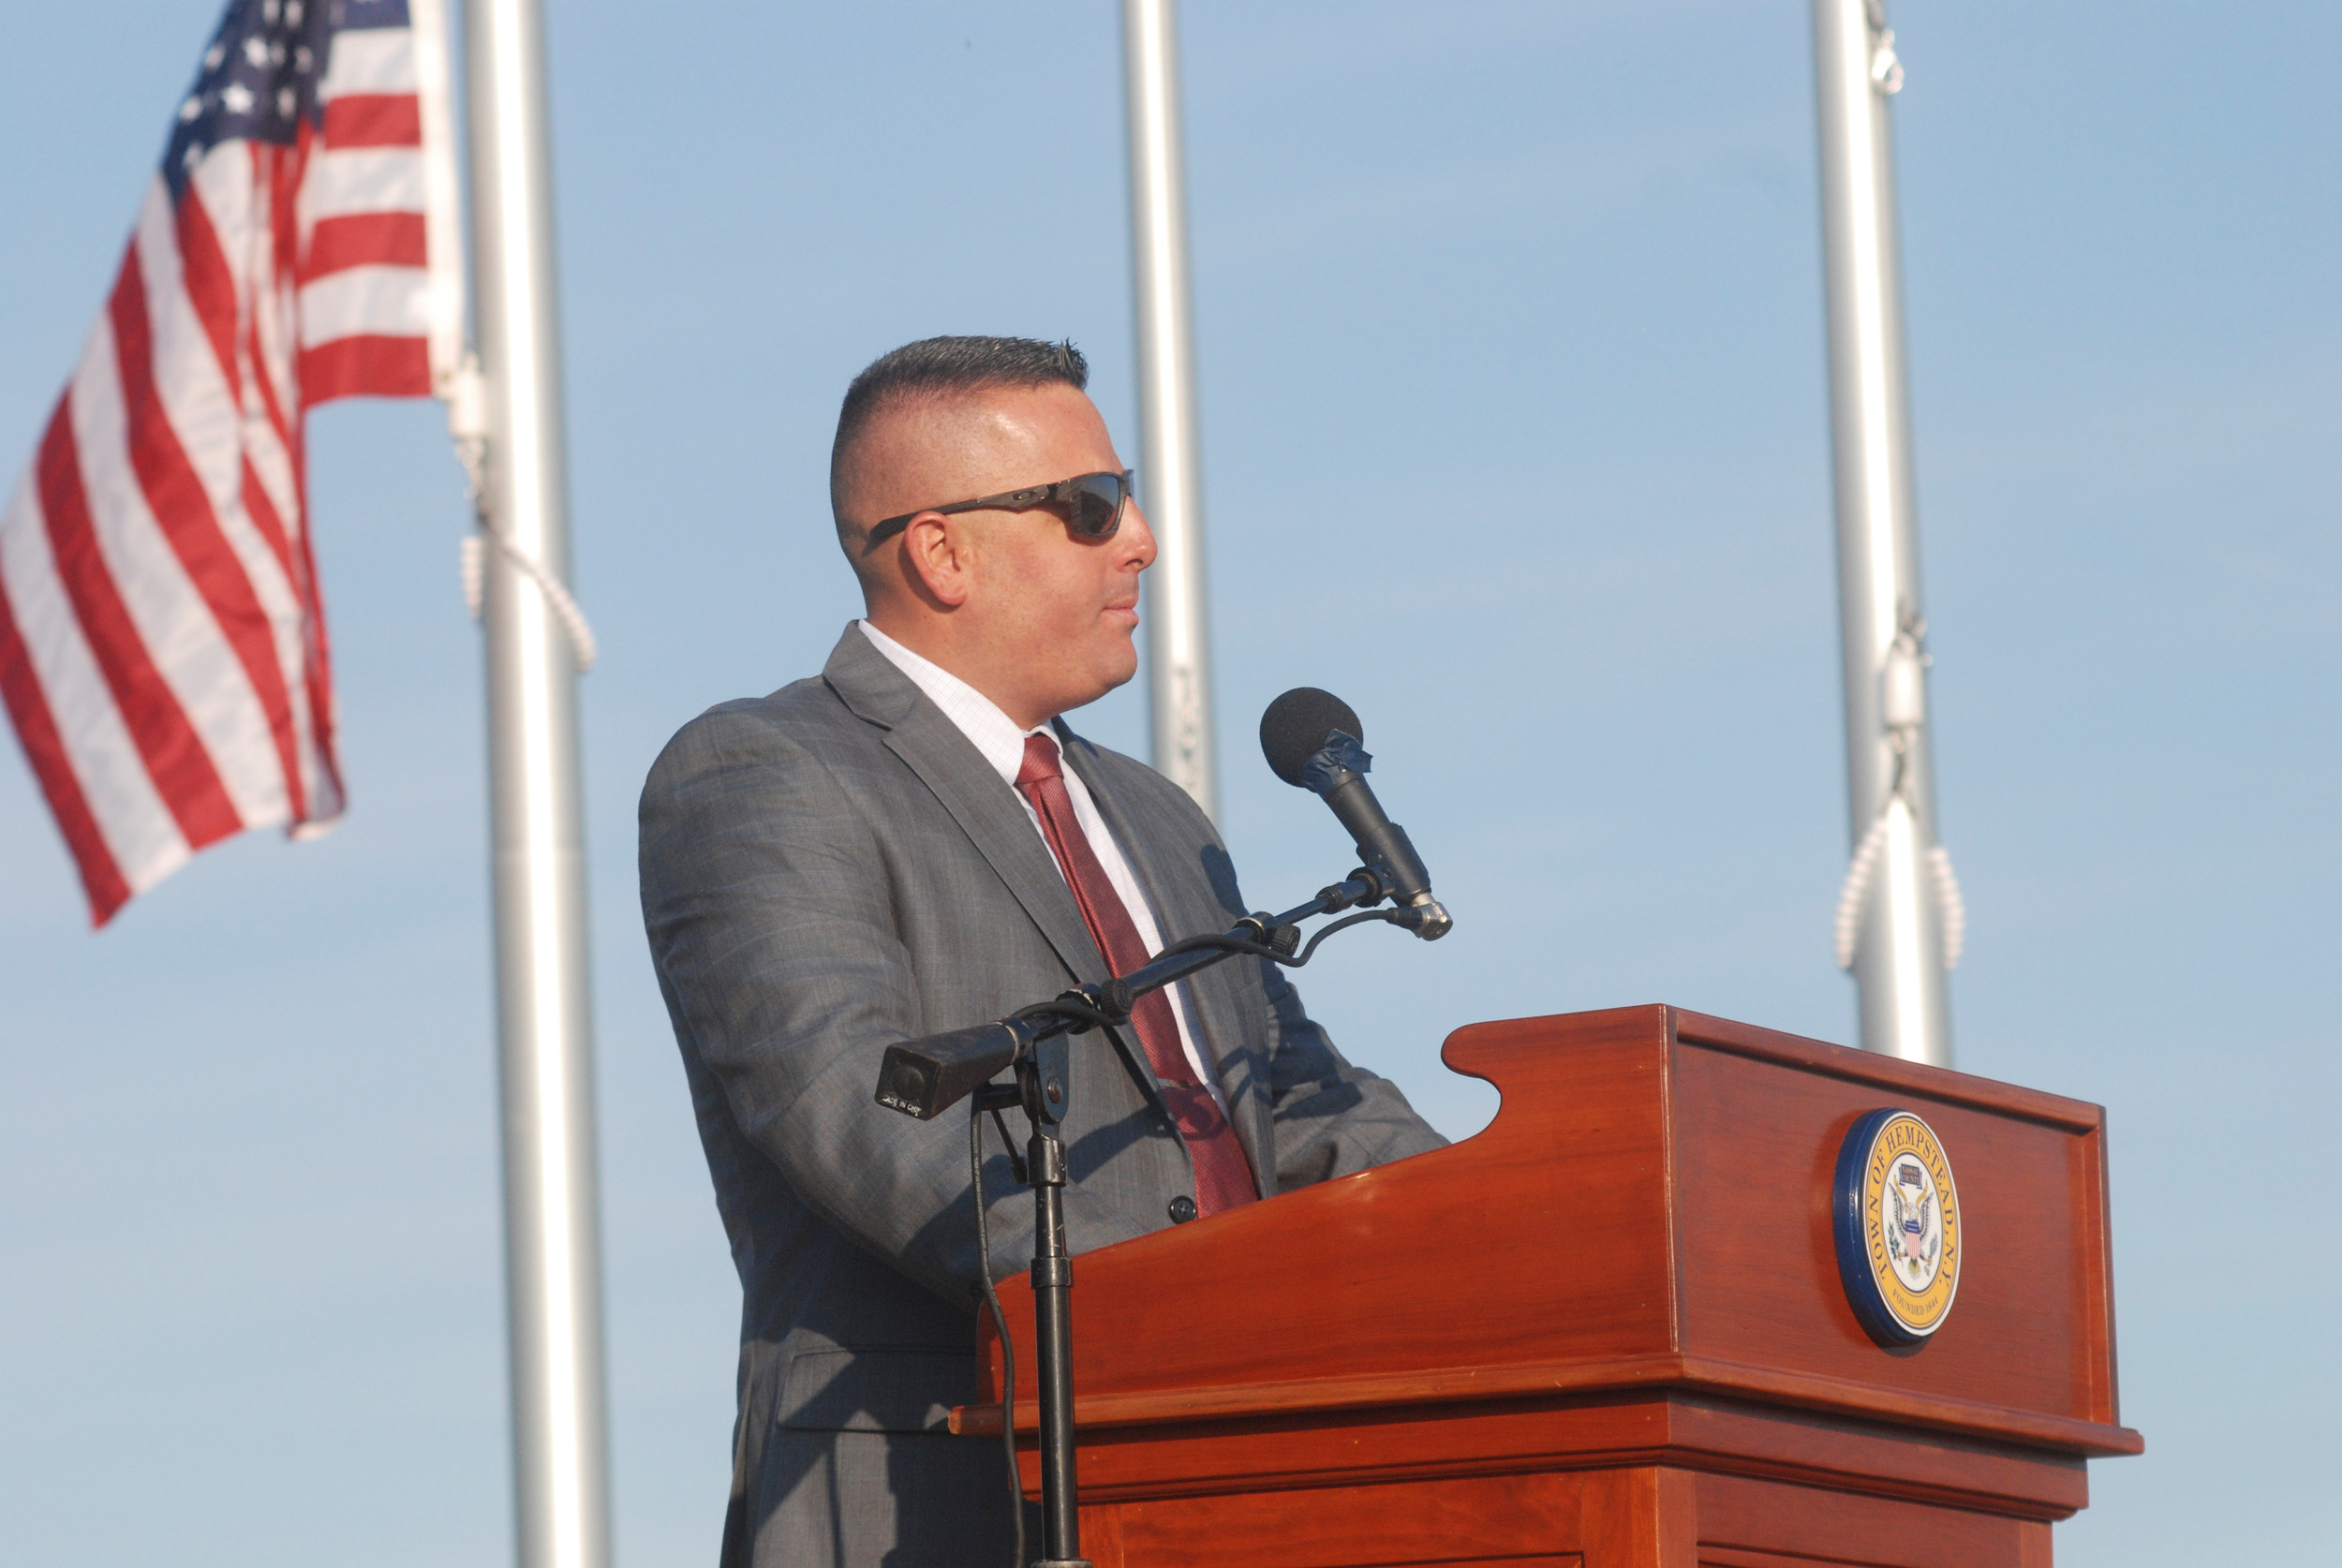 Bobby Gies, son of the late Ronnie Gies, a lieutenant from Merrick who was part of the elite Rescue Squad 288 in Queens, implored attendees of the Point Lookout Park ceremony to tell their children about the terrorist attacks.